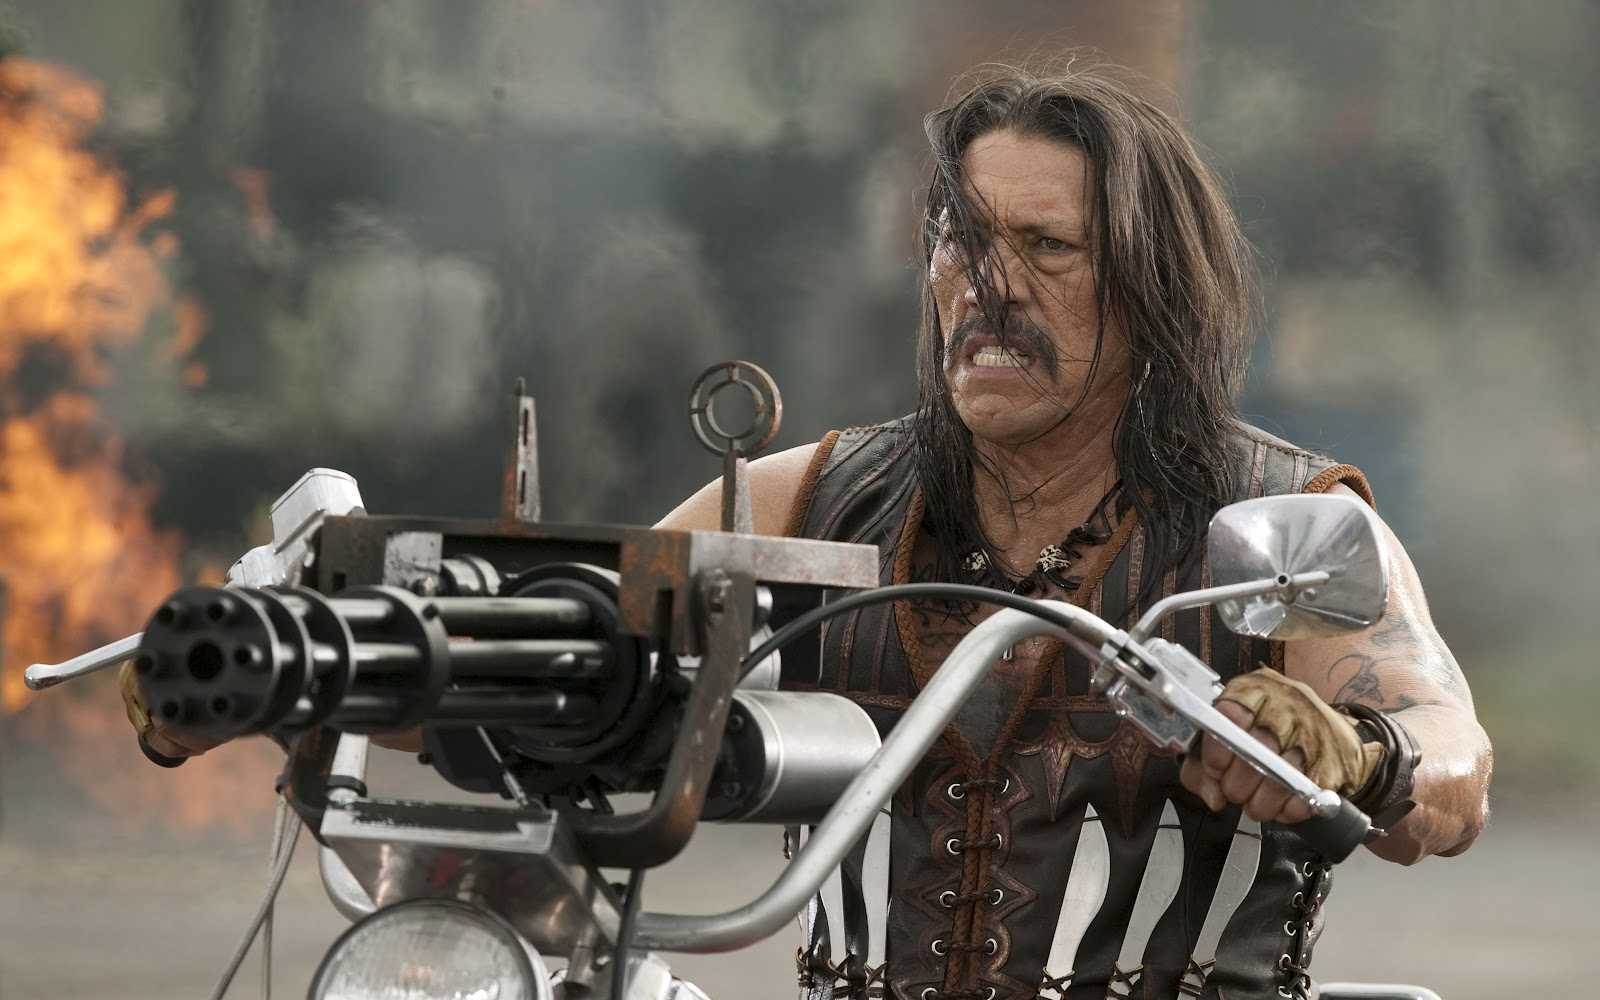 Badboys Deluxe Machete Kills Movie-3035